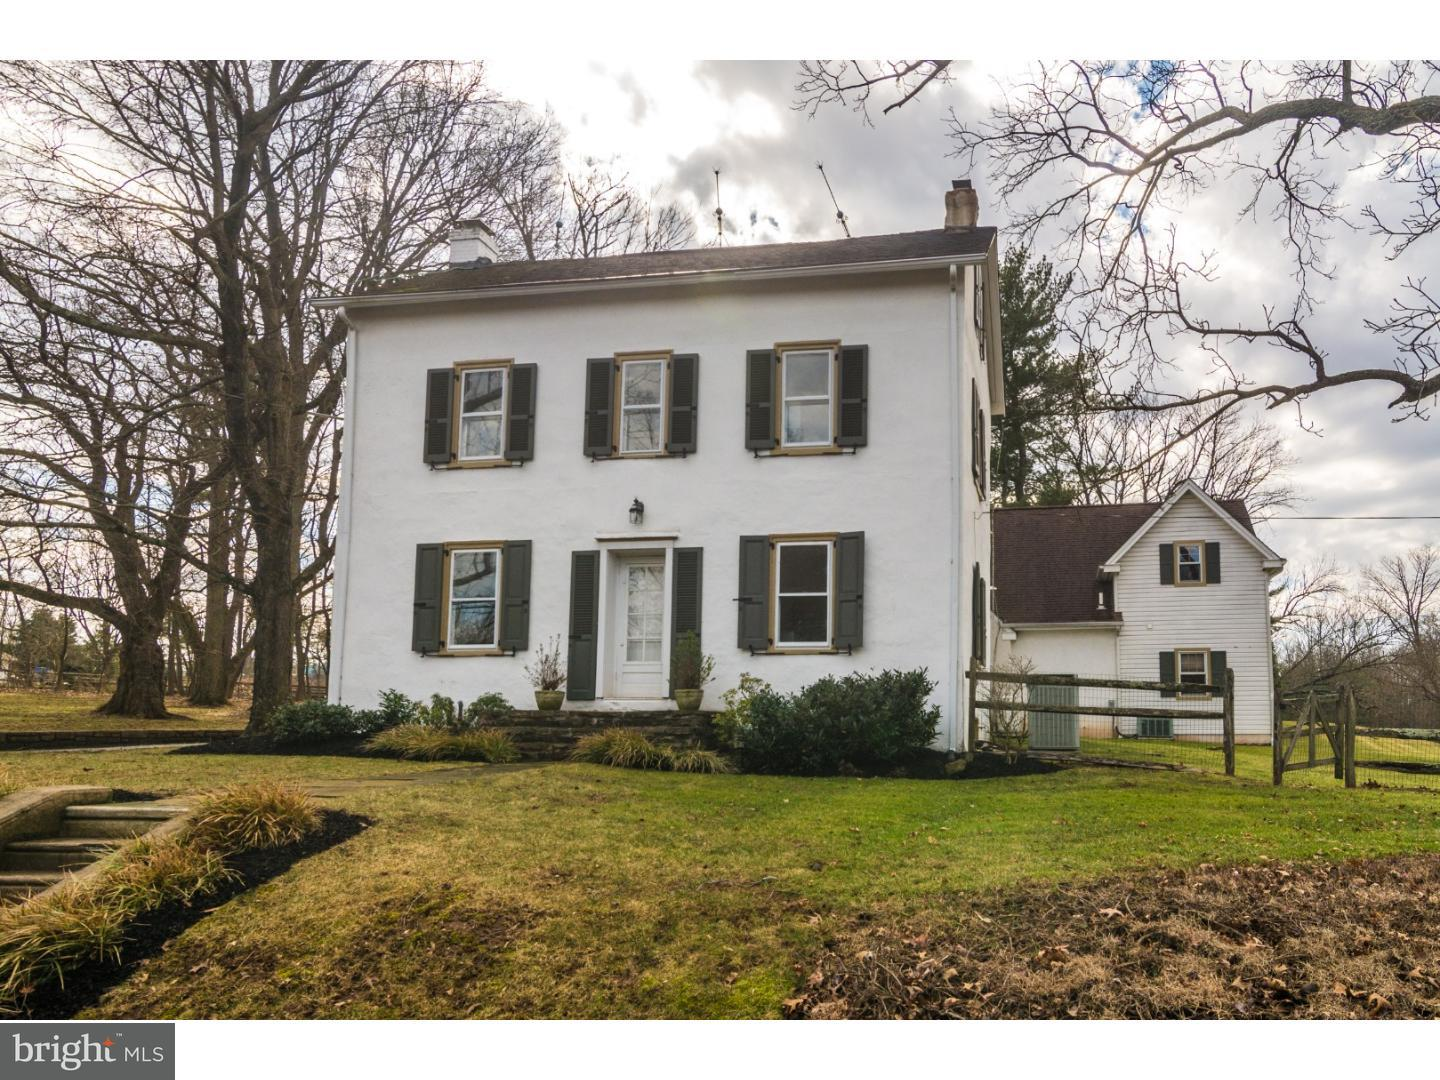 3354 MILL RD, COLLEGEVILLE - Listed at $575,000, COLLEGEVILLE